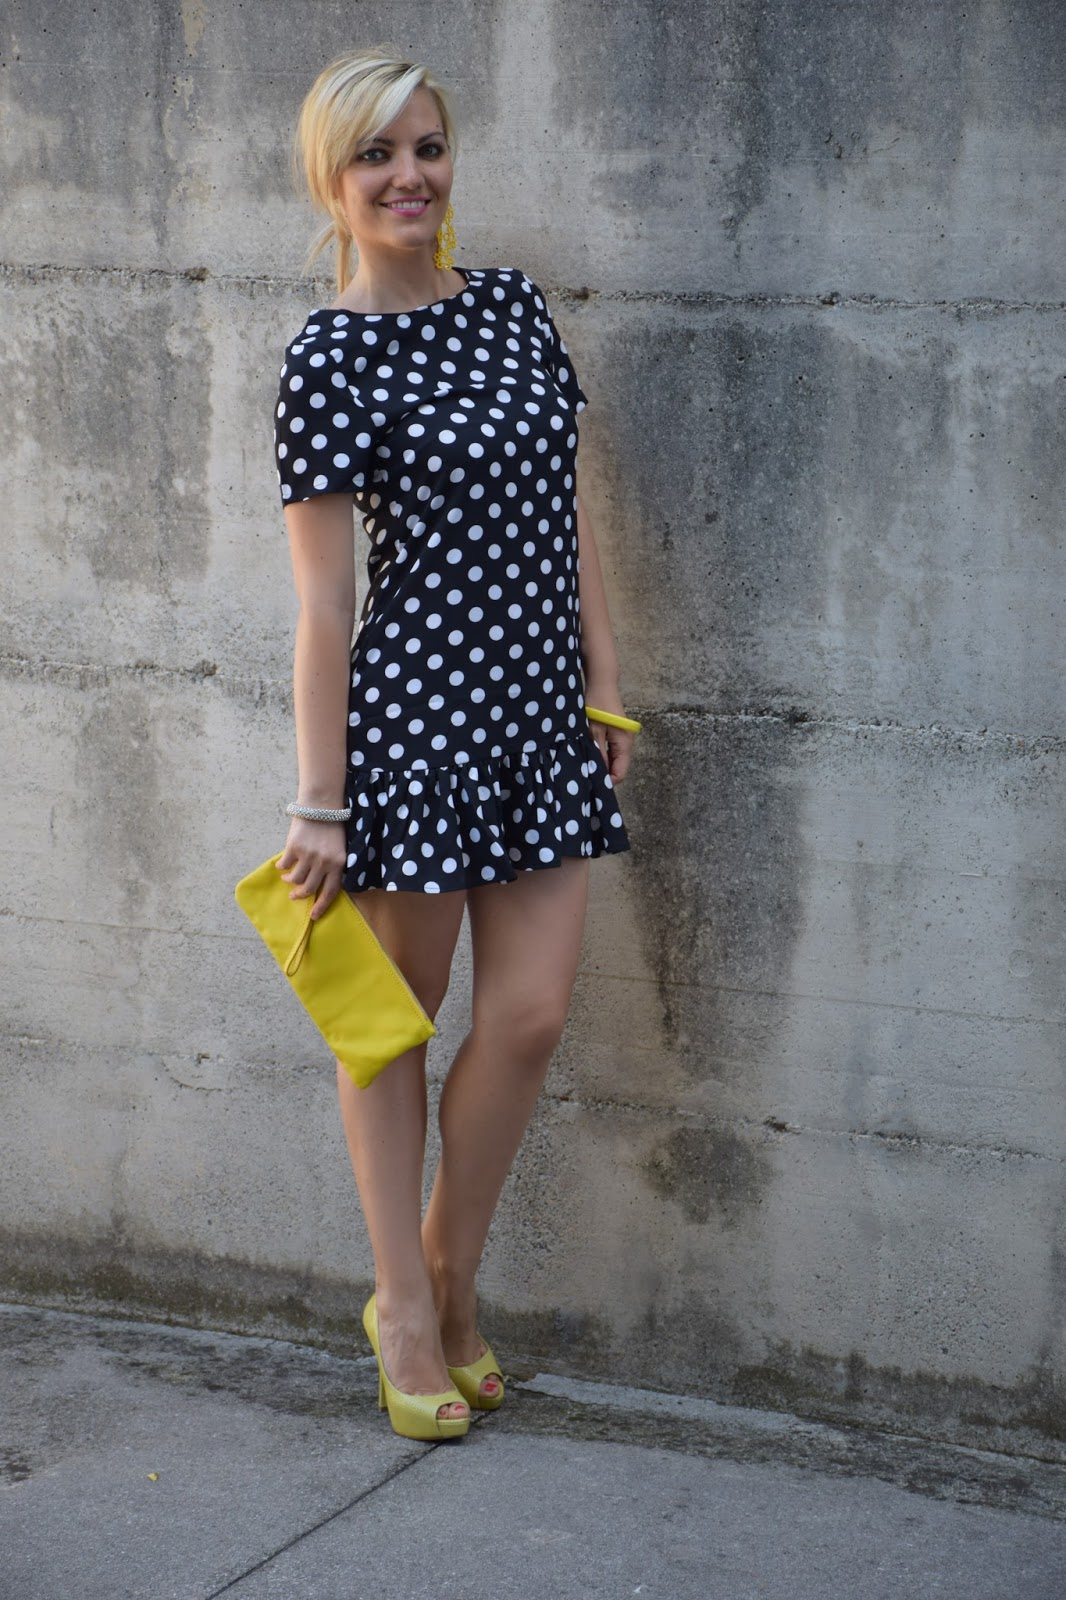 outlet store fb883 72cfc Color-Block By FelyM.: OUTFIT: POLKA DOTS DRESS - ABITO A ...